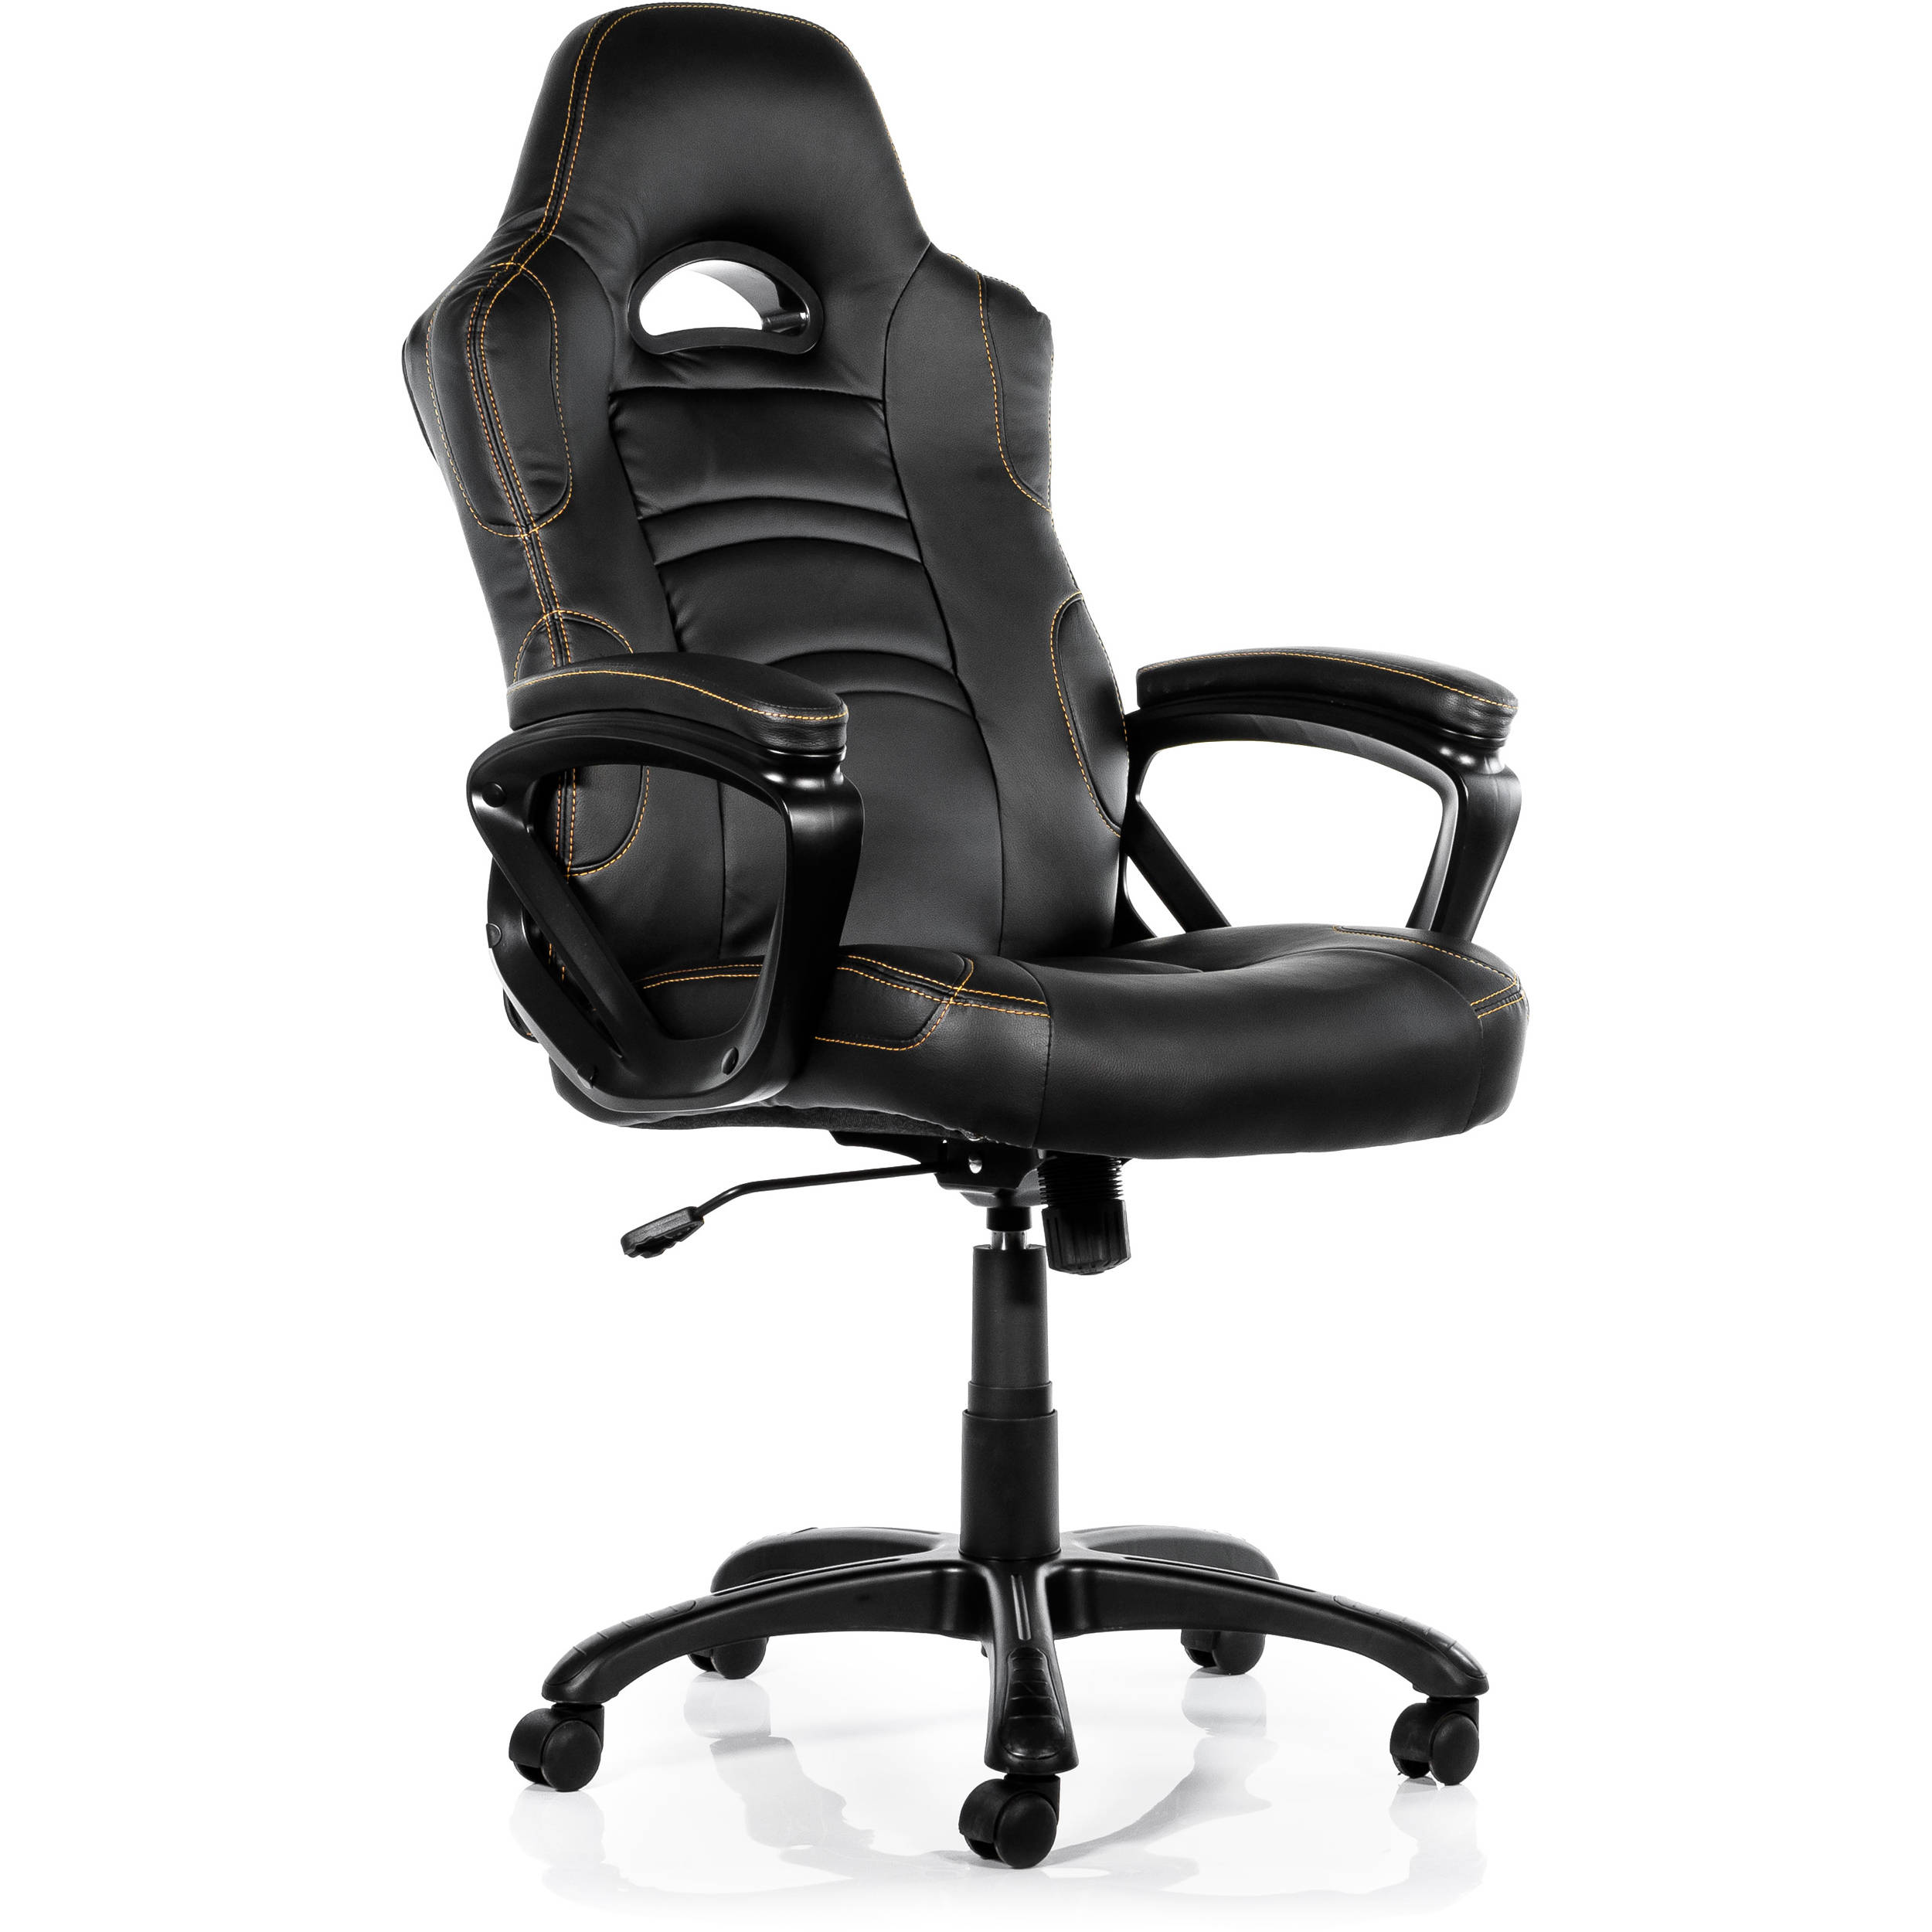 Arozzi Enzo Gaming Chair Black ENZO BK B&H Video